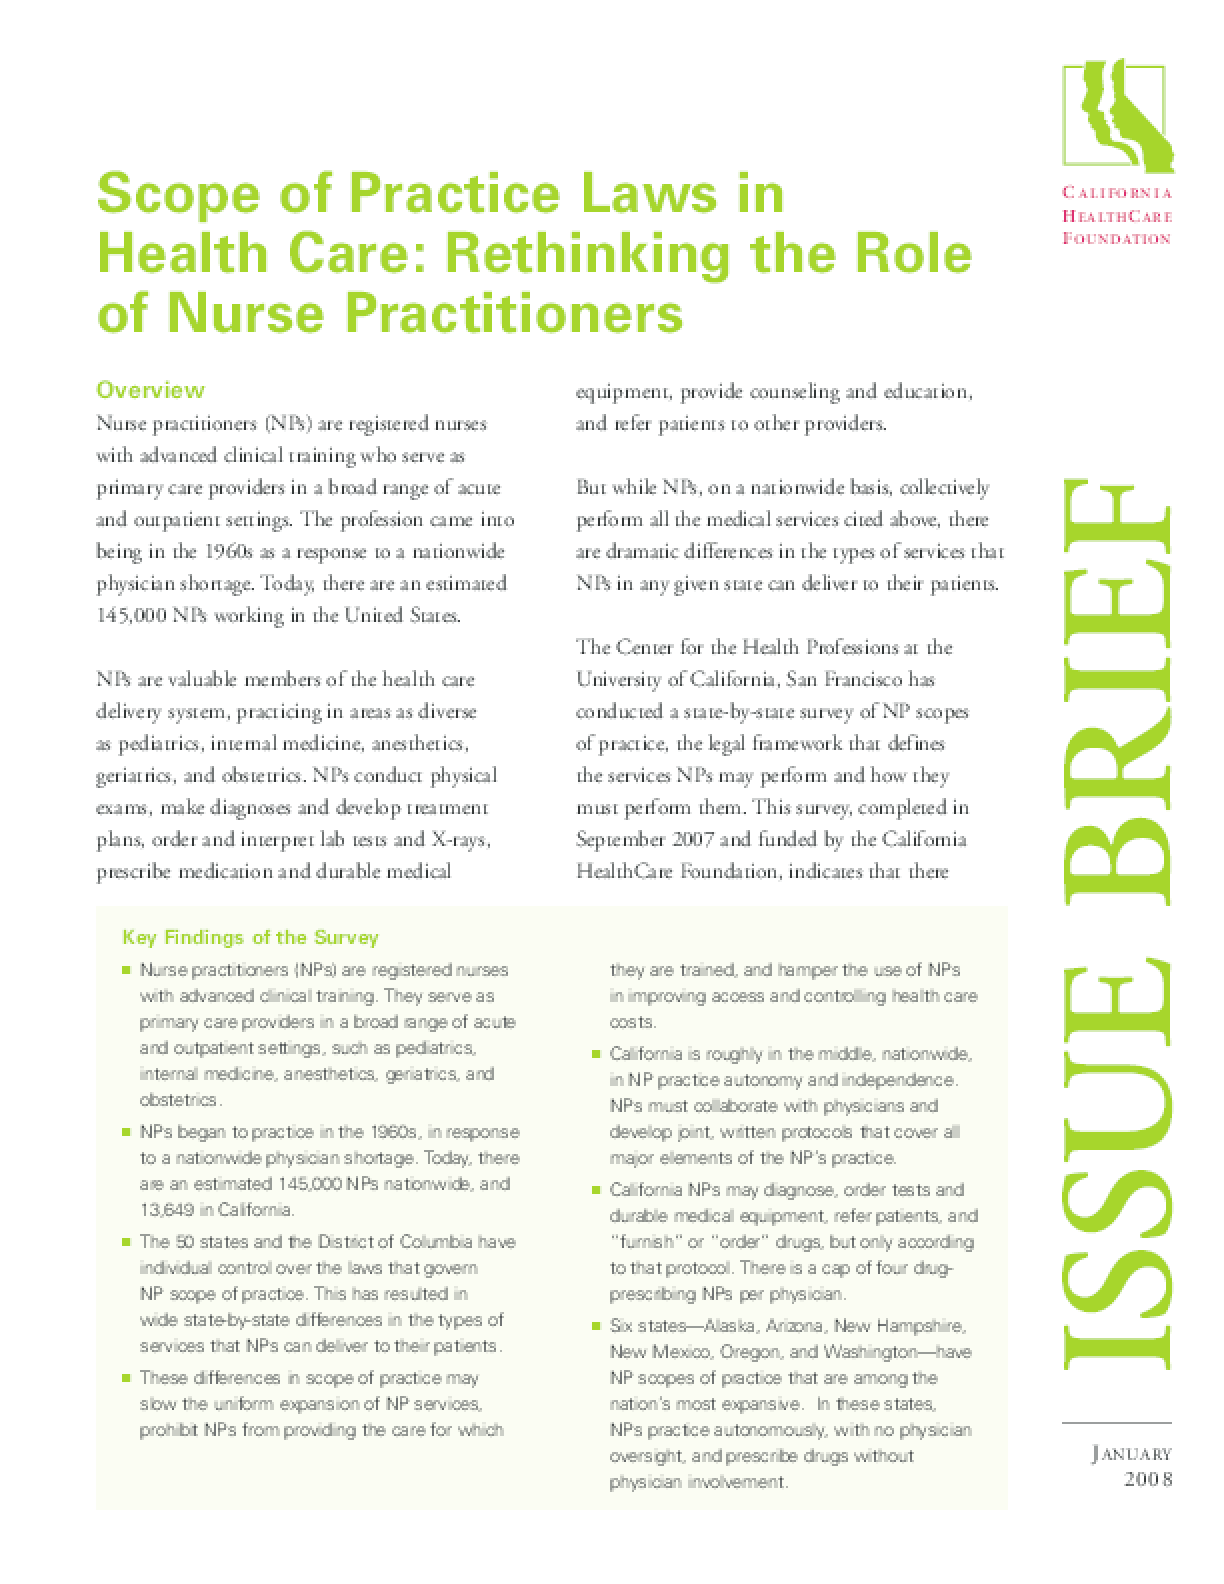 Scope of Practice Laws in Health Care: Rethinking the Role of Nurse Practitioners